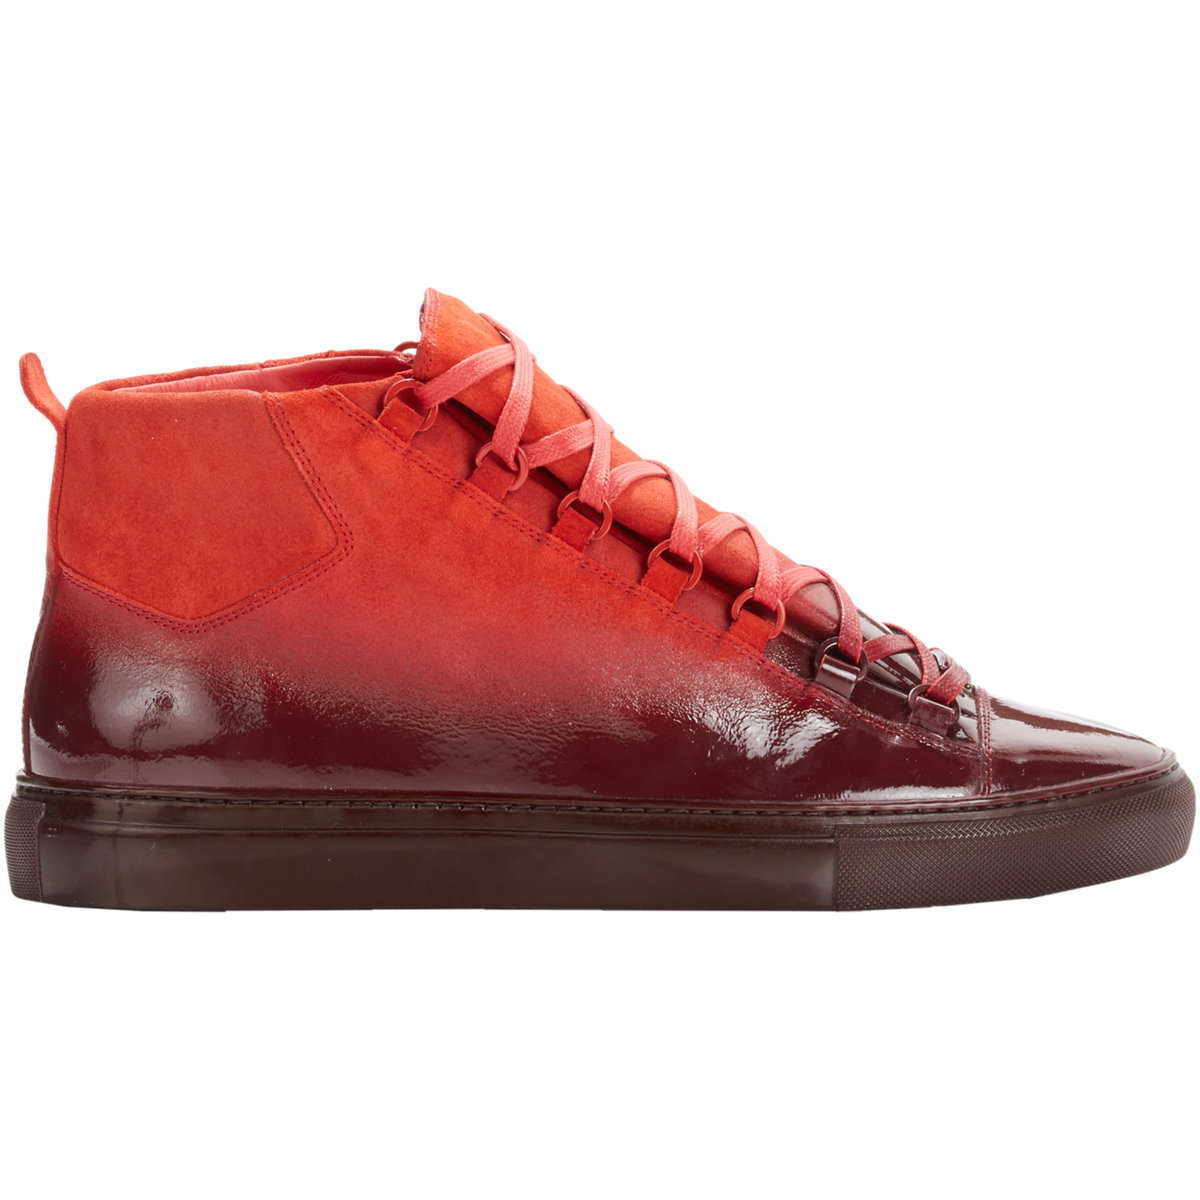 Shop Men's Balenciaga Sneakers on Lyst. Track over Balenciaga Sneakers for stock and sale updates.